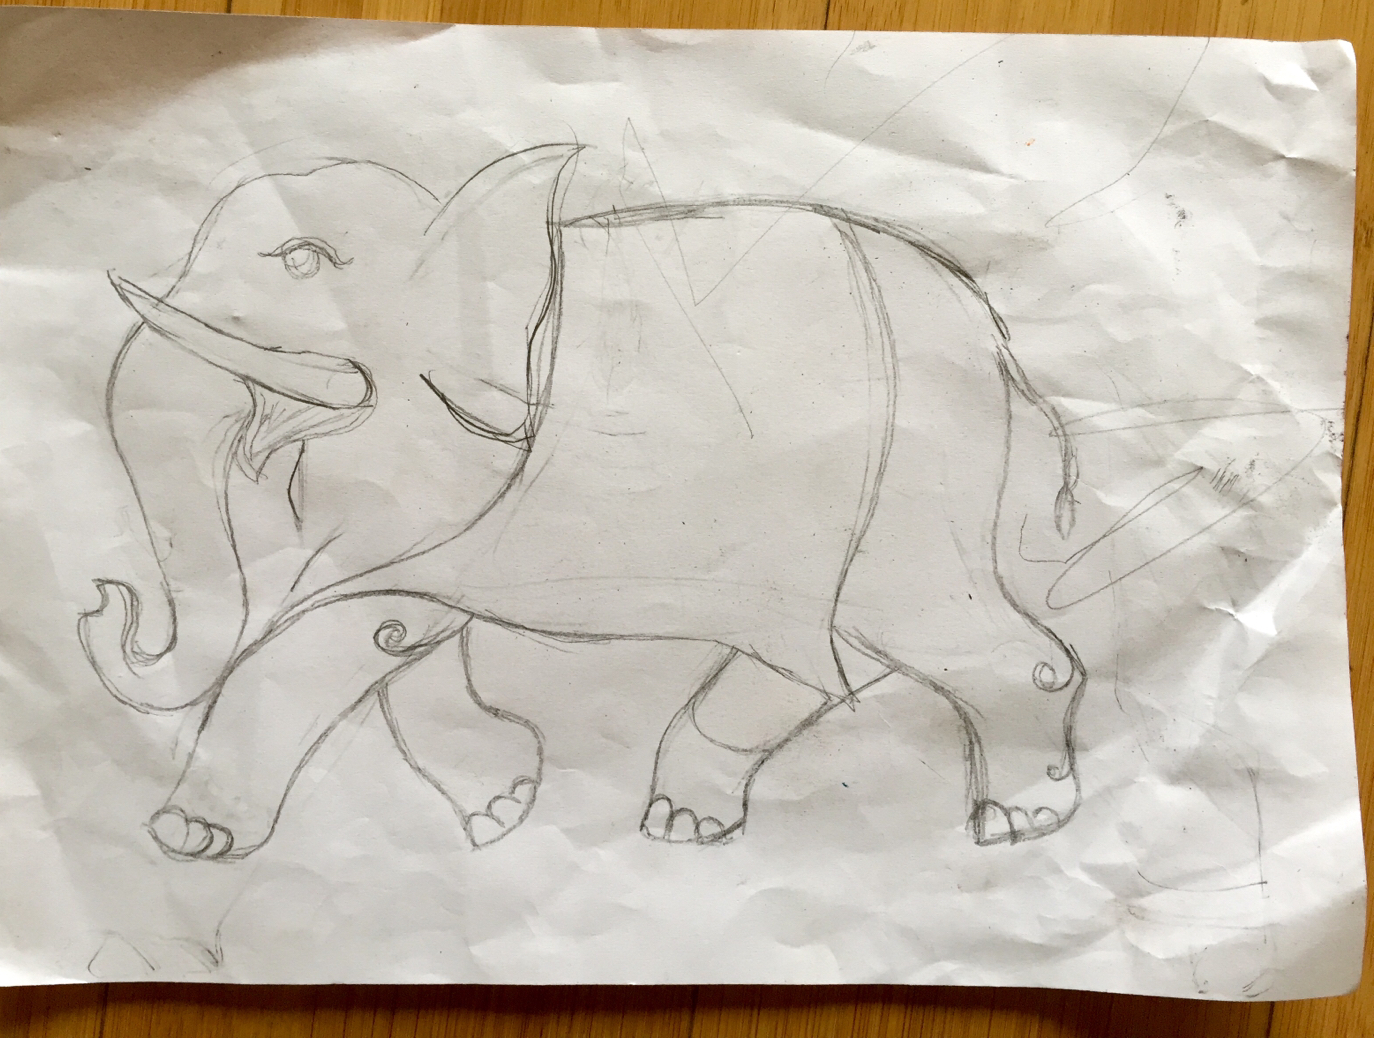 An elephant that I saw crumpled up on the ground